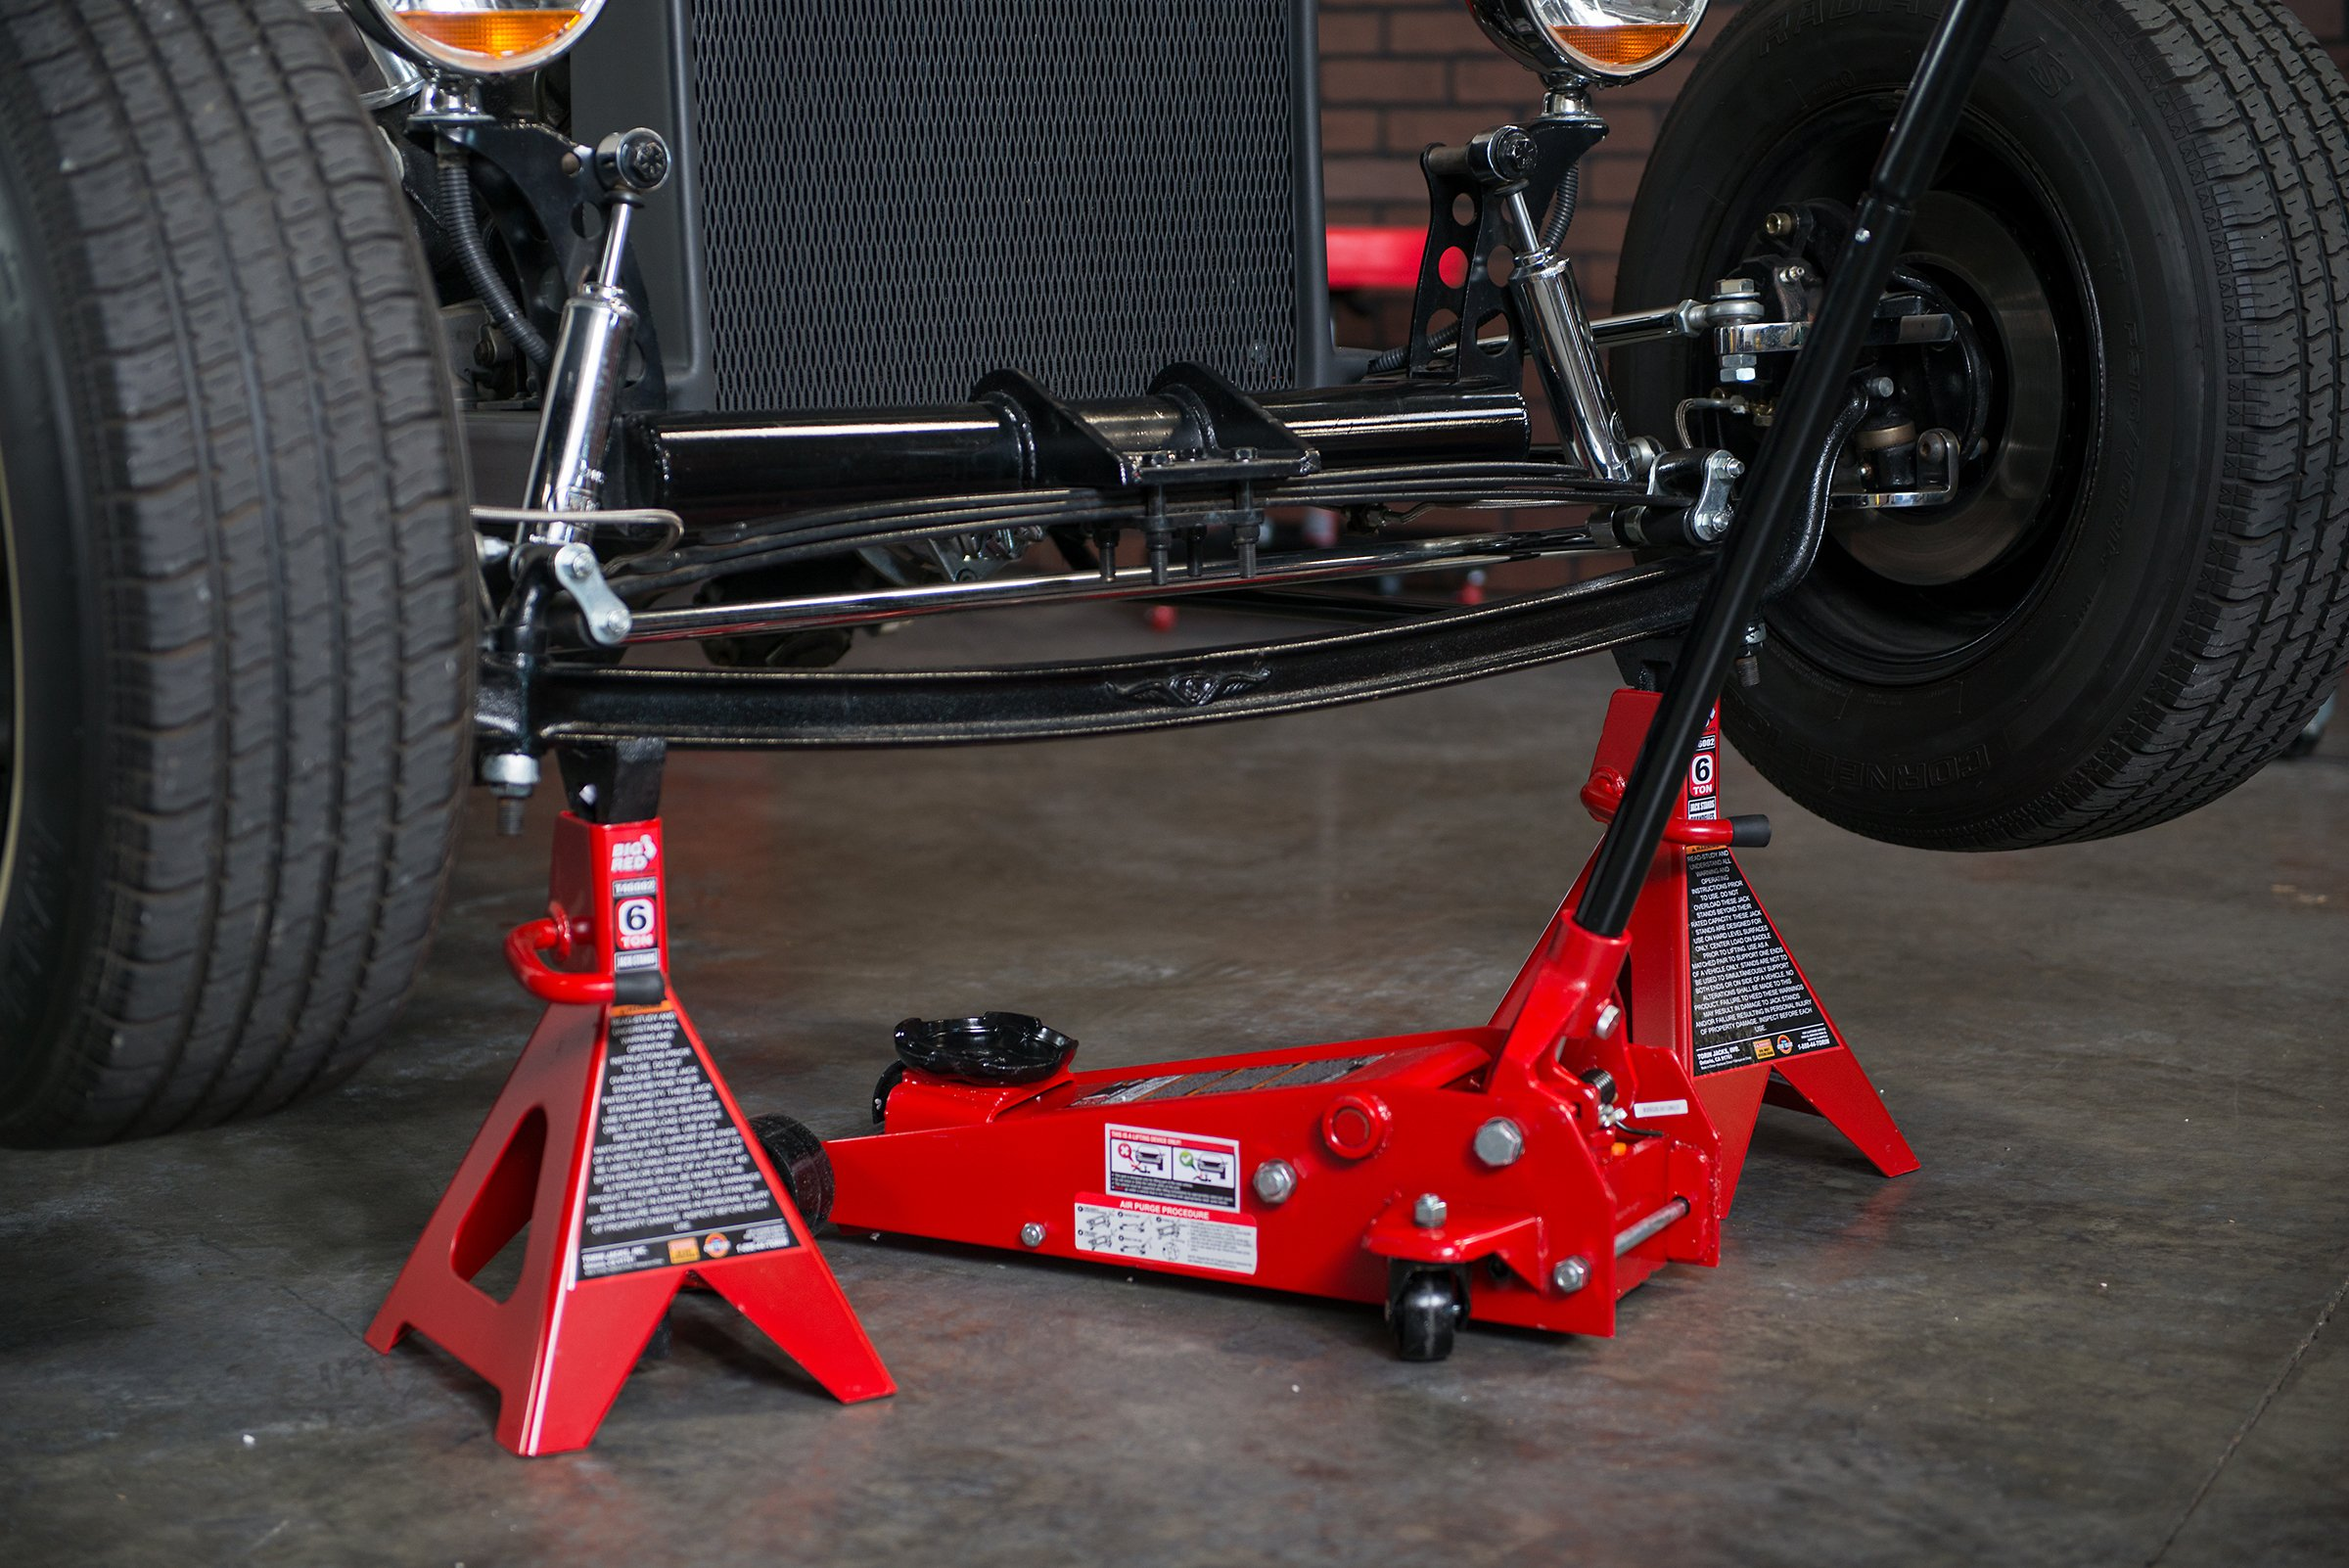 Torin Big Red Steel Jack Stands: Double Locking, 6 Ton Capacity, 1 Pair by Torin (Image #10)